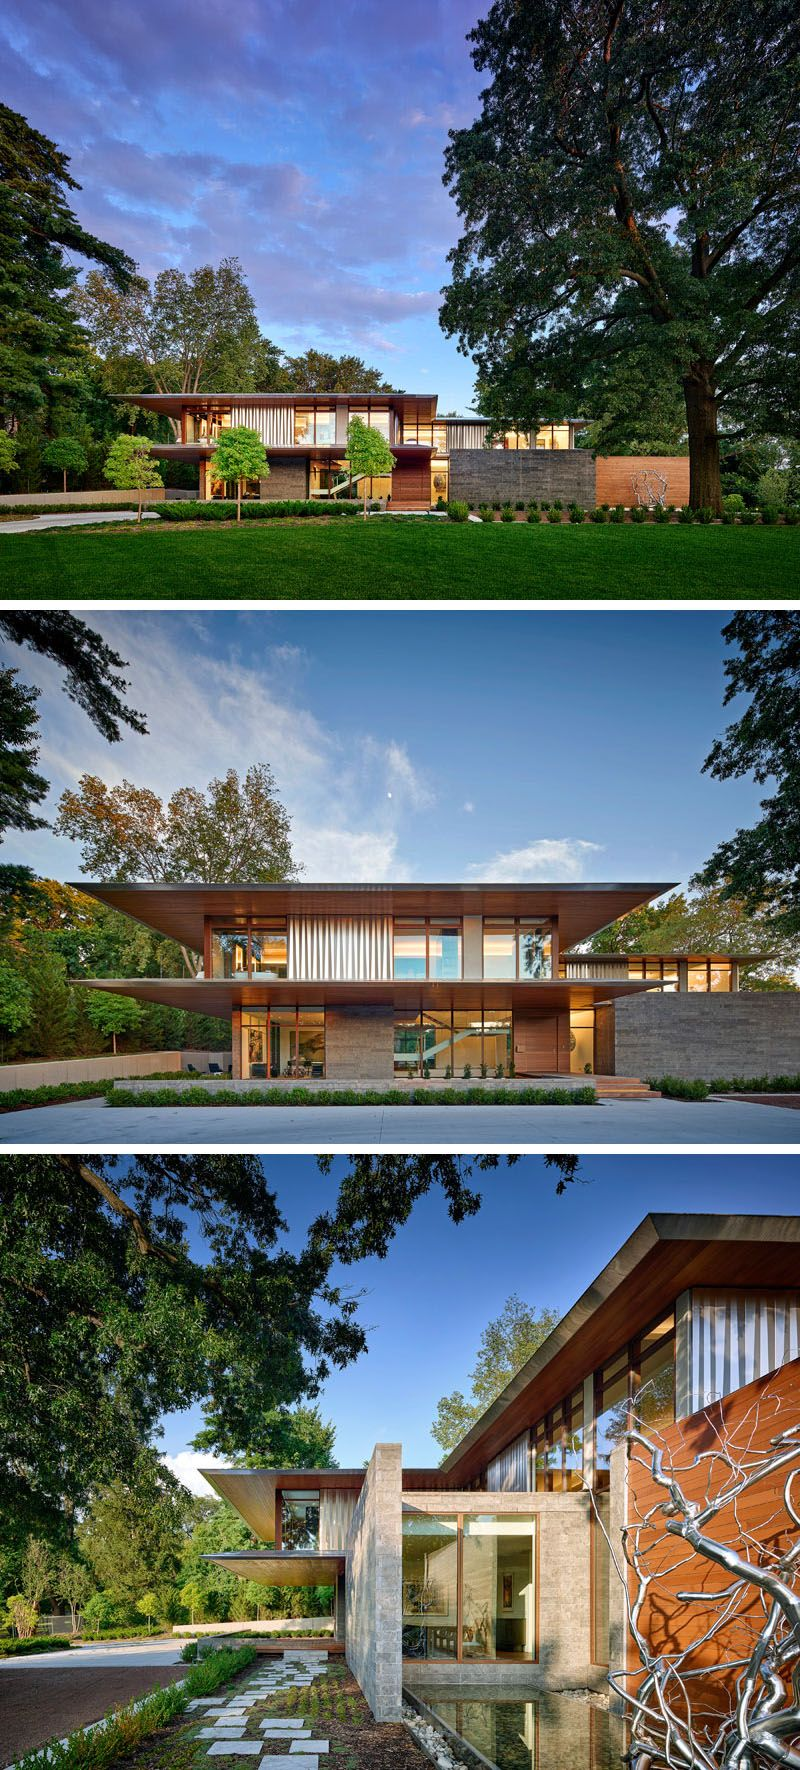 Architecture and interior design firm hufft have completed a new house named the artery residence thats located in kansas city missouri